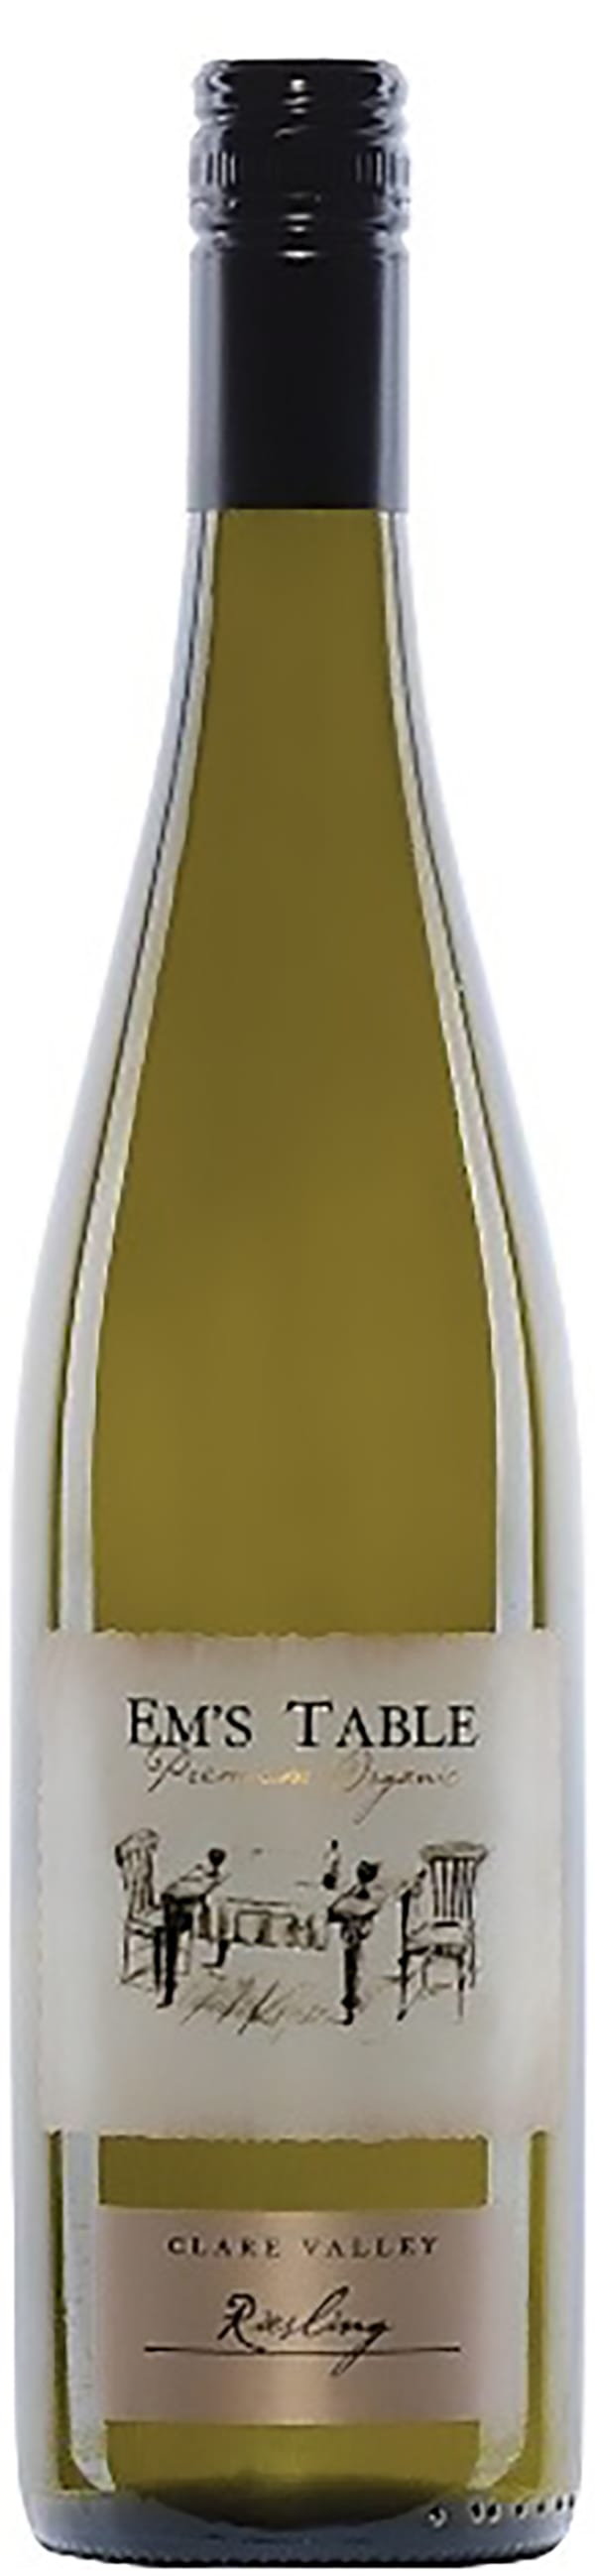 Em's Table Riesling 2015